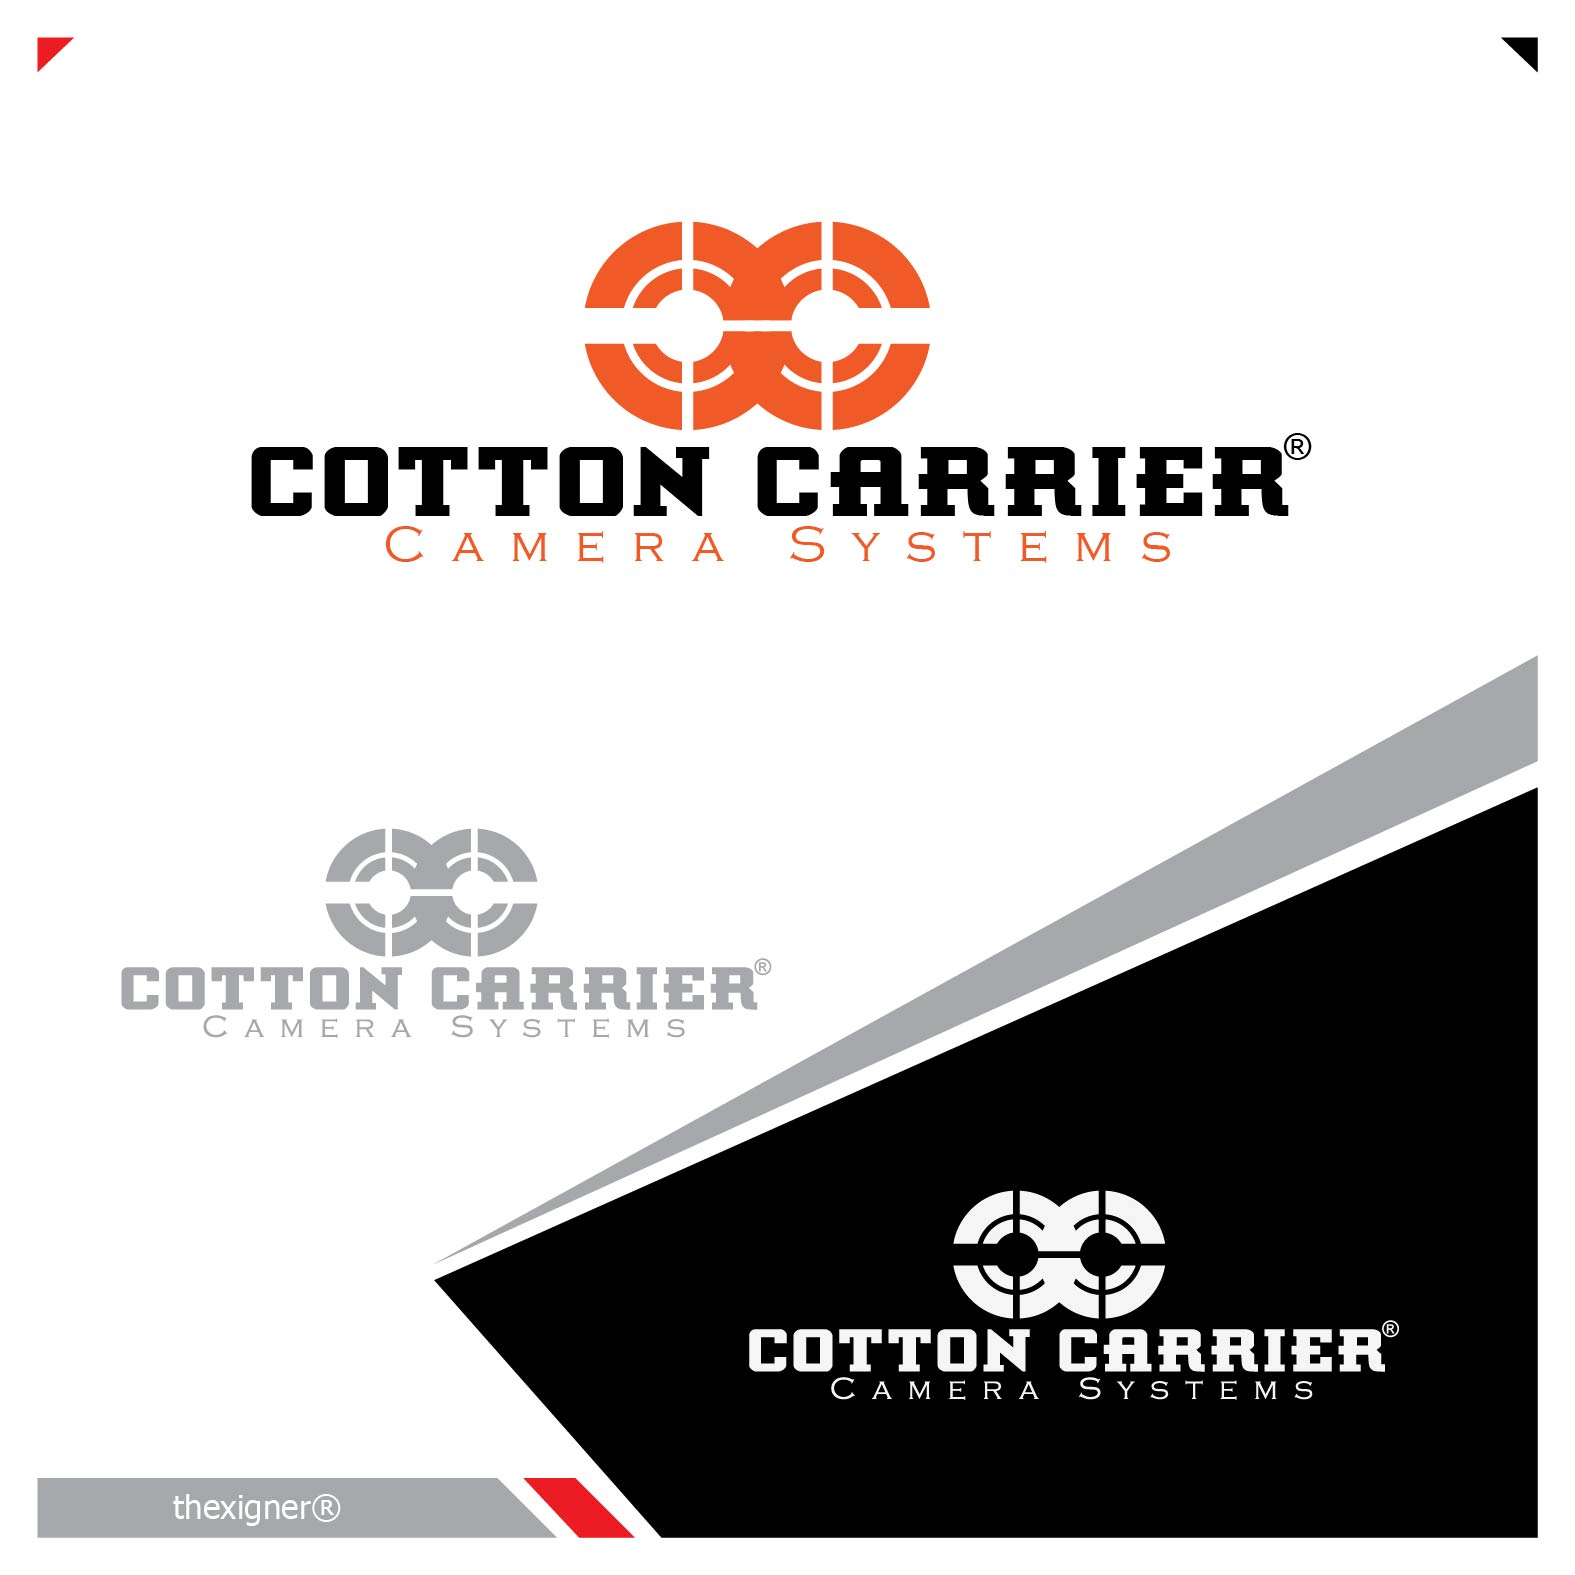 Logo Design by lagalag - Entry No. 9 in the Logo Design Contest Cotton Carrier Camera Systems Logo Design.